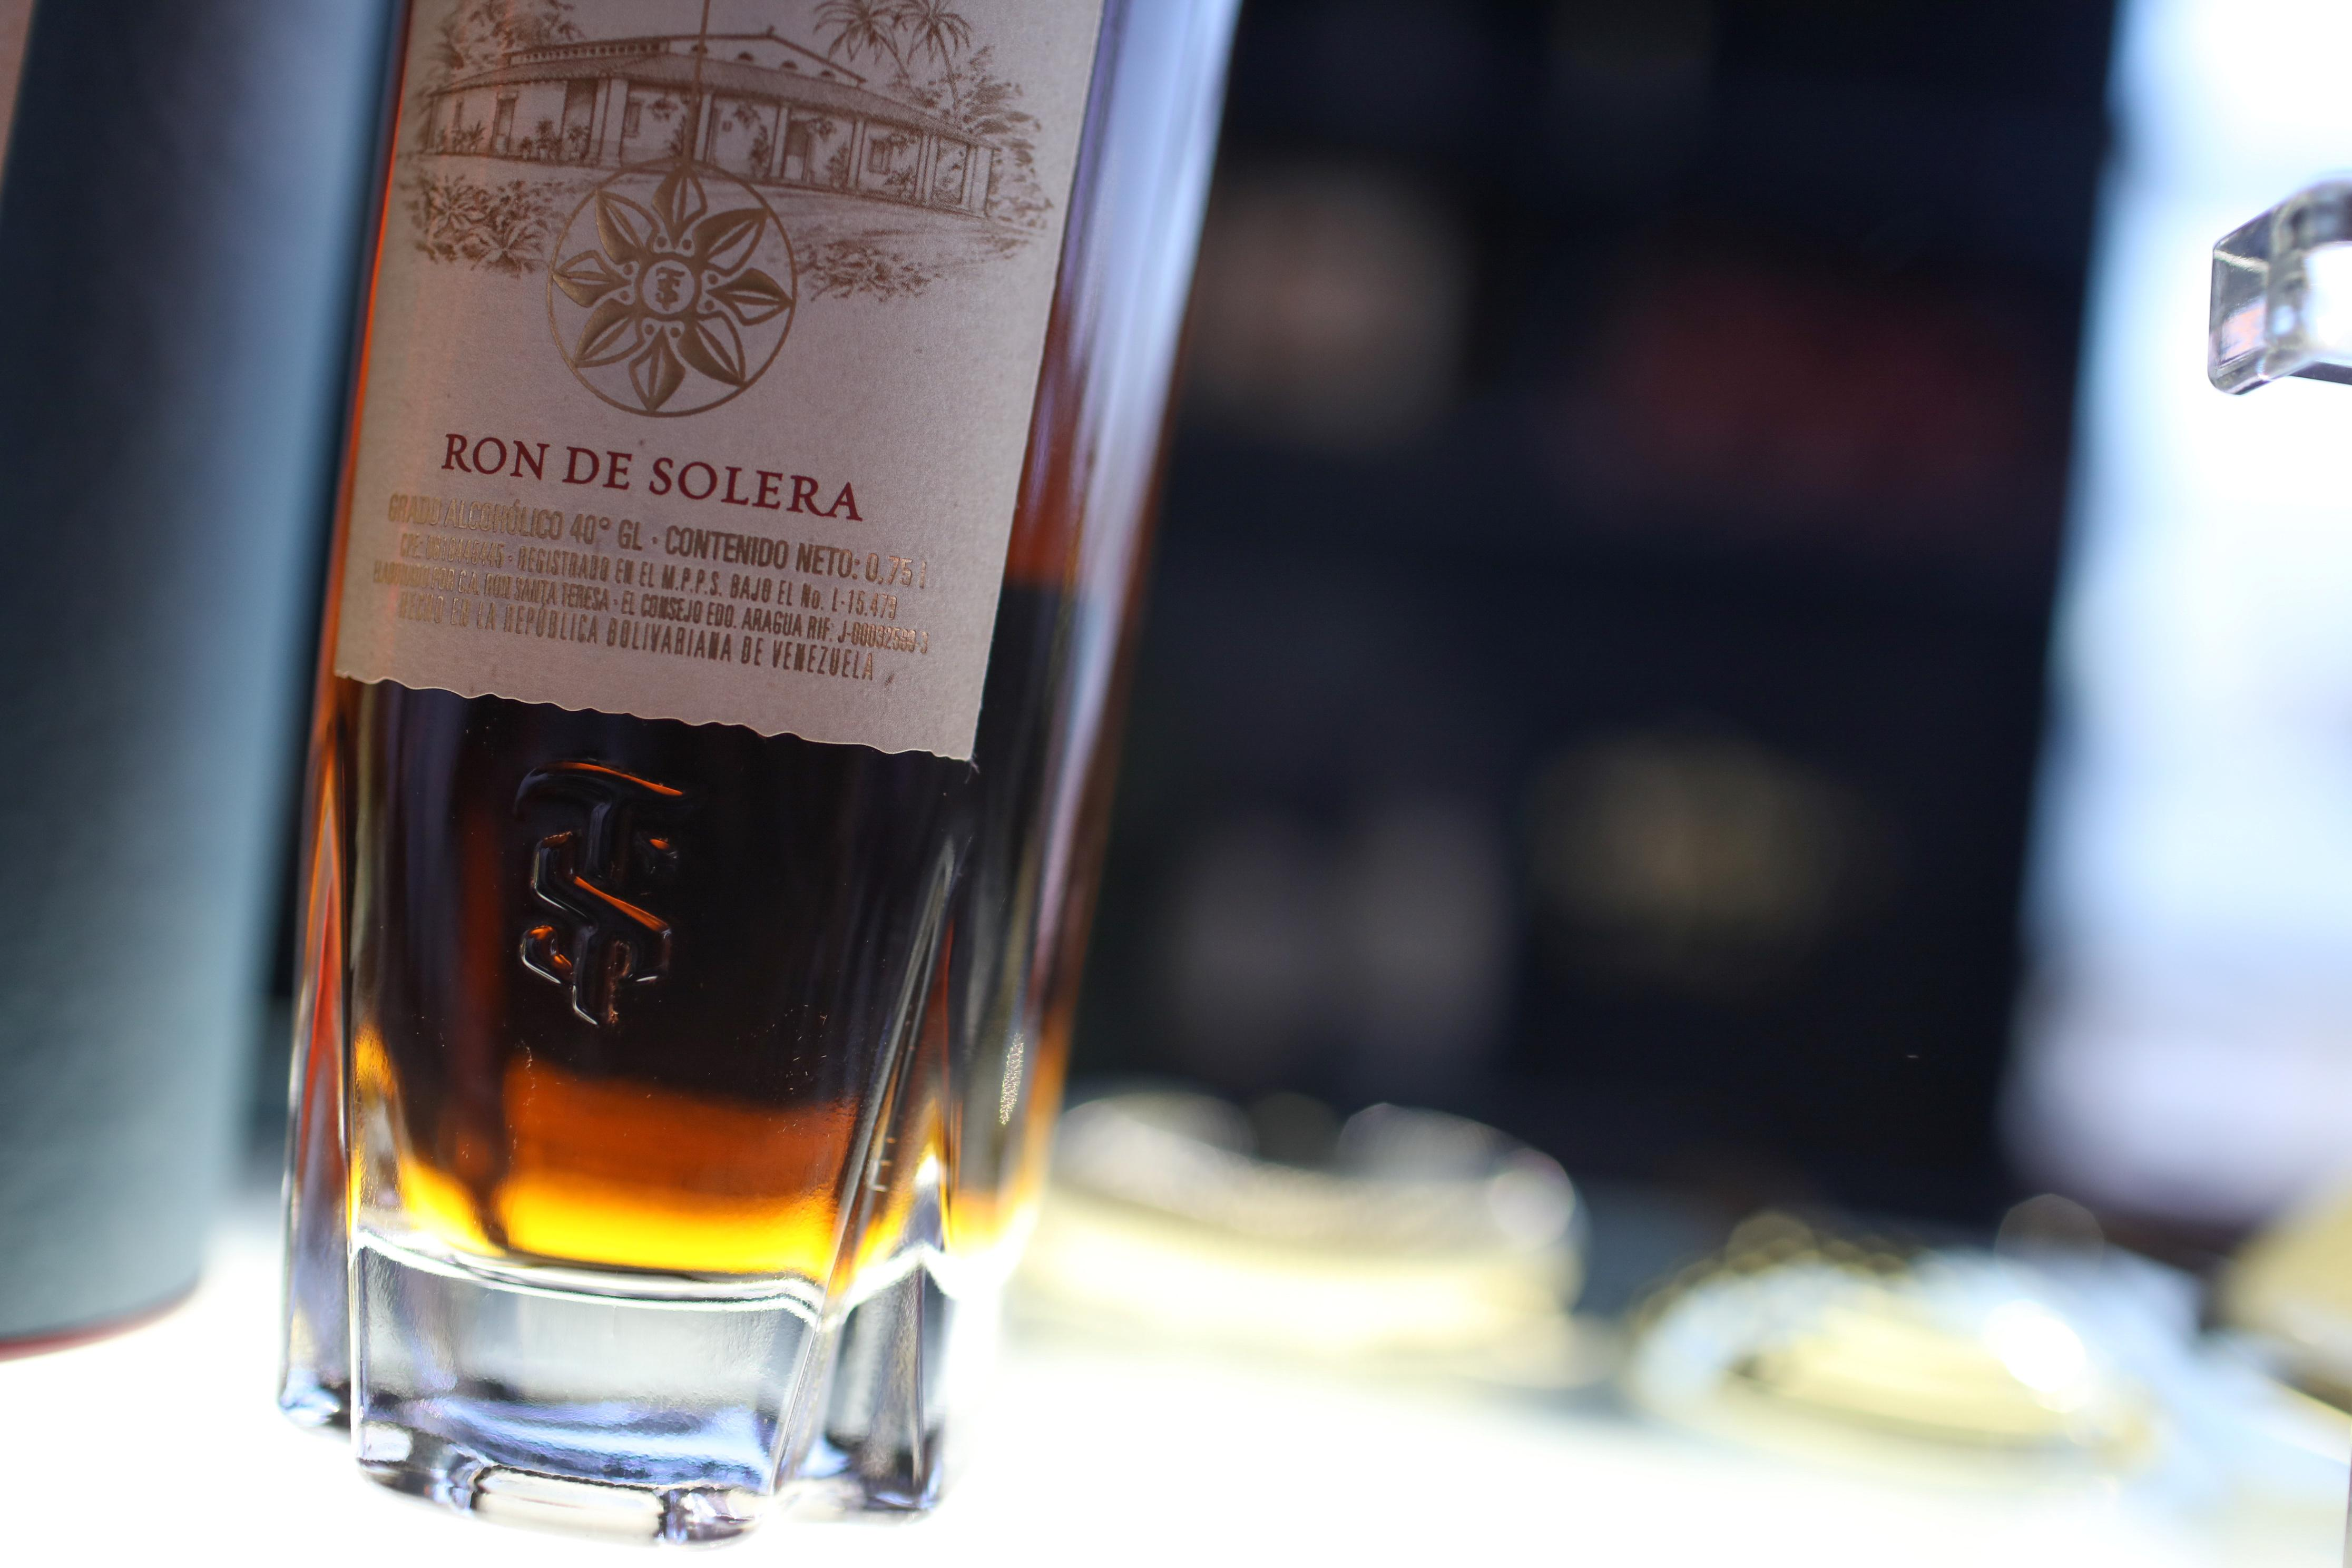 Venezuelan rum maker offers shares in hope of China-style transition